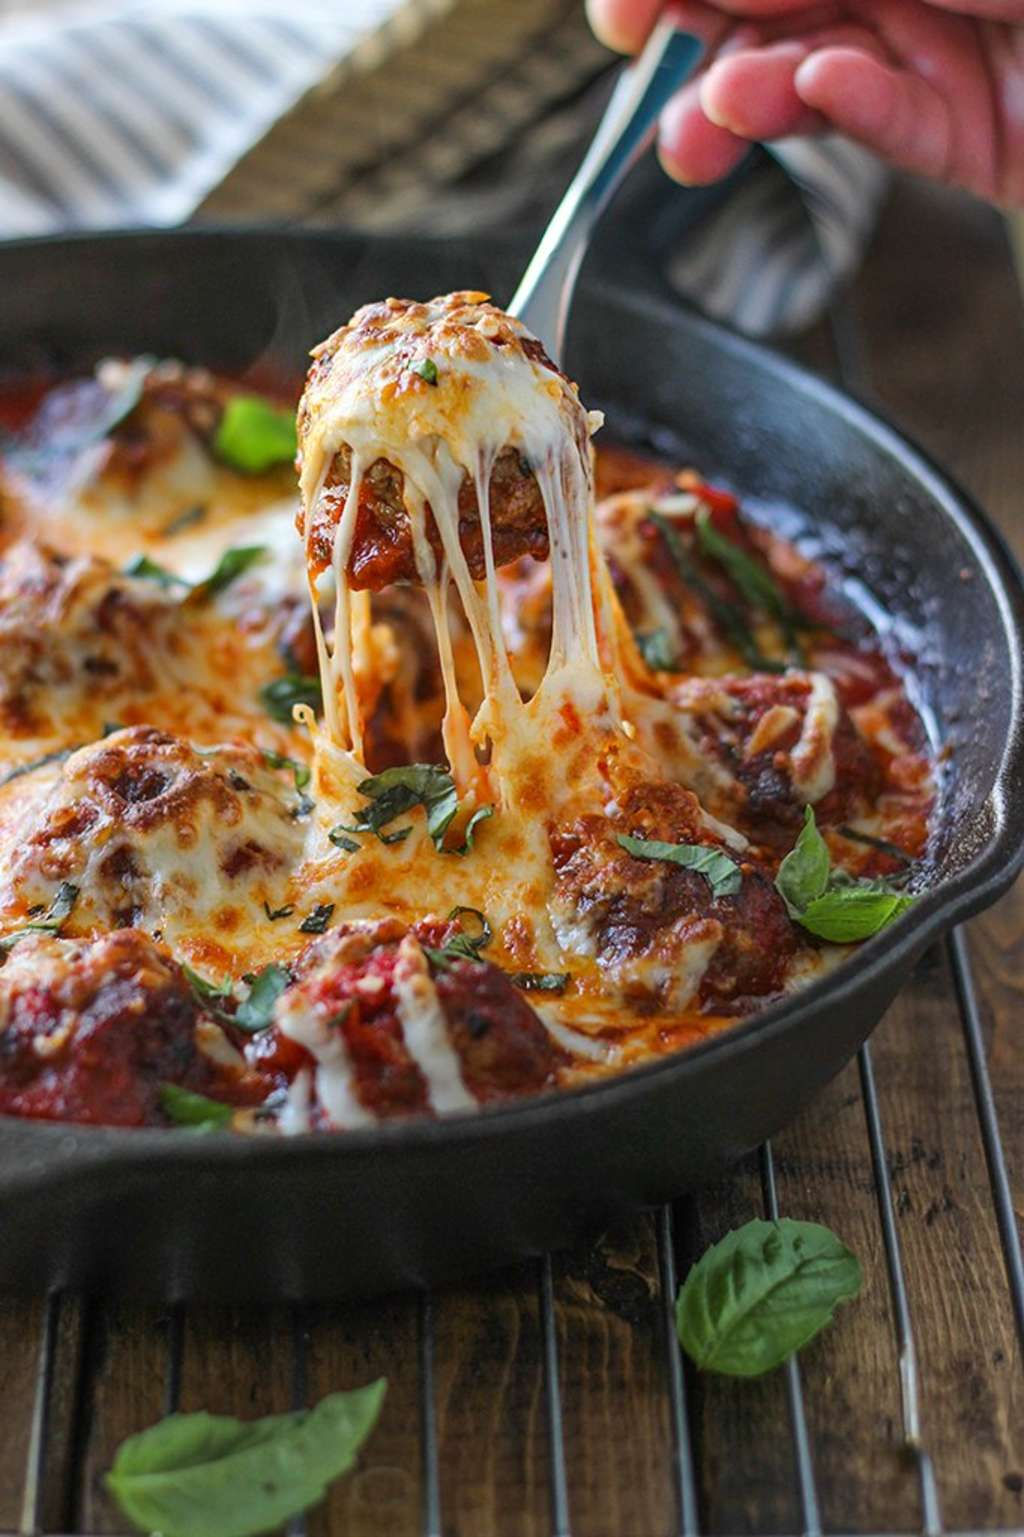 This Meatball Skillet Recipe Is All About The Cheesy